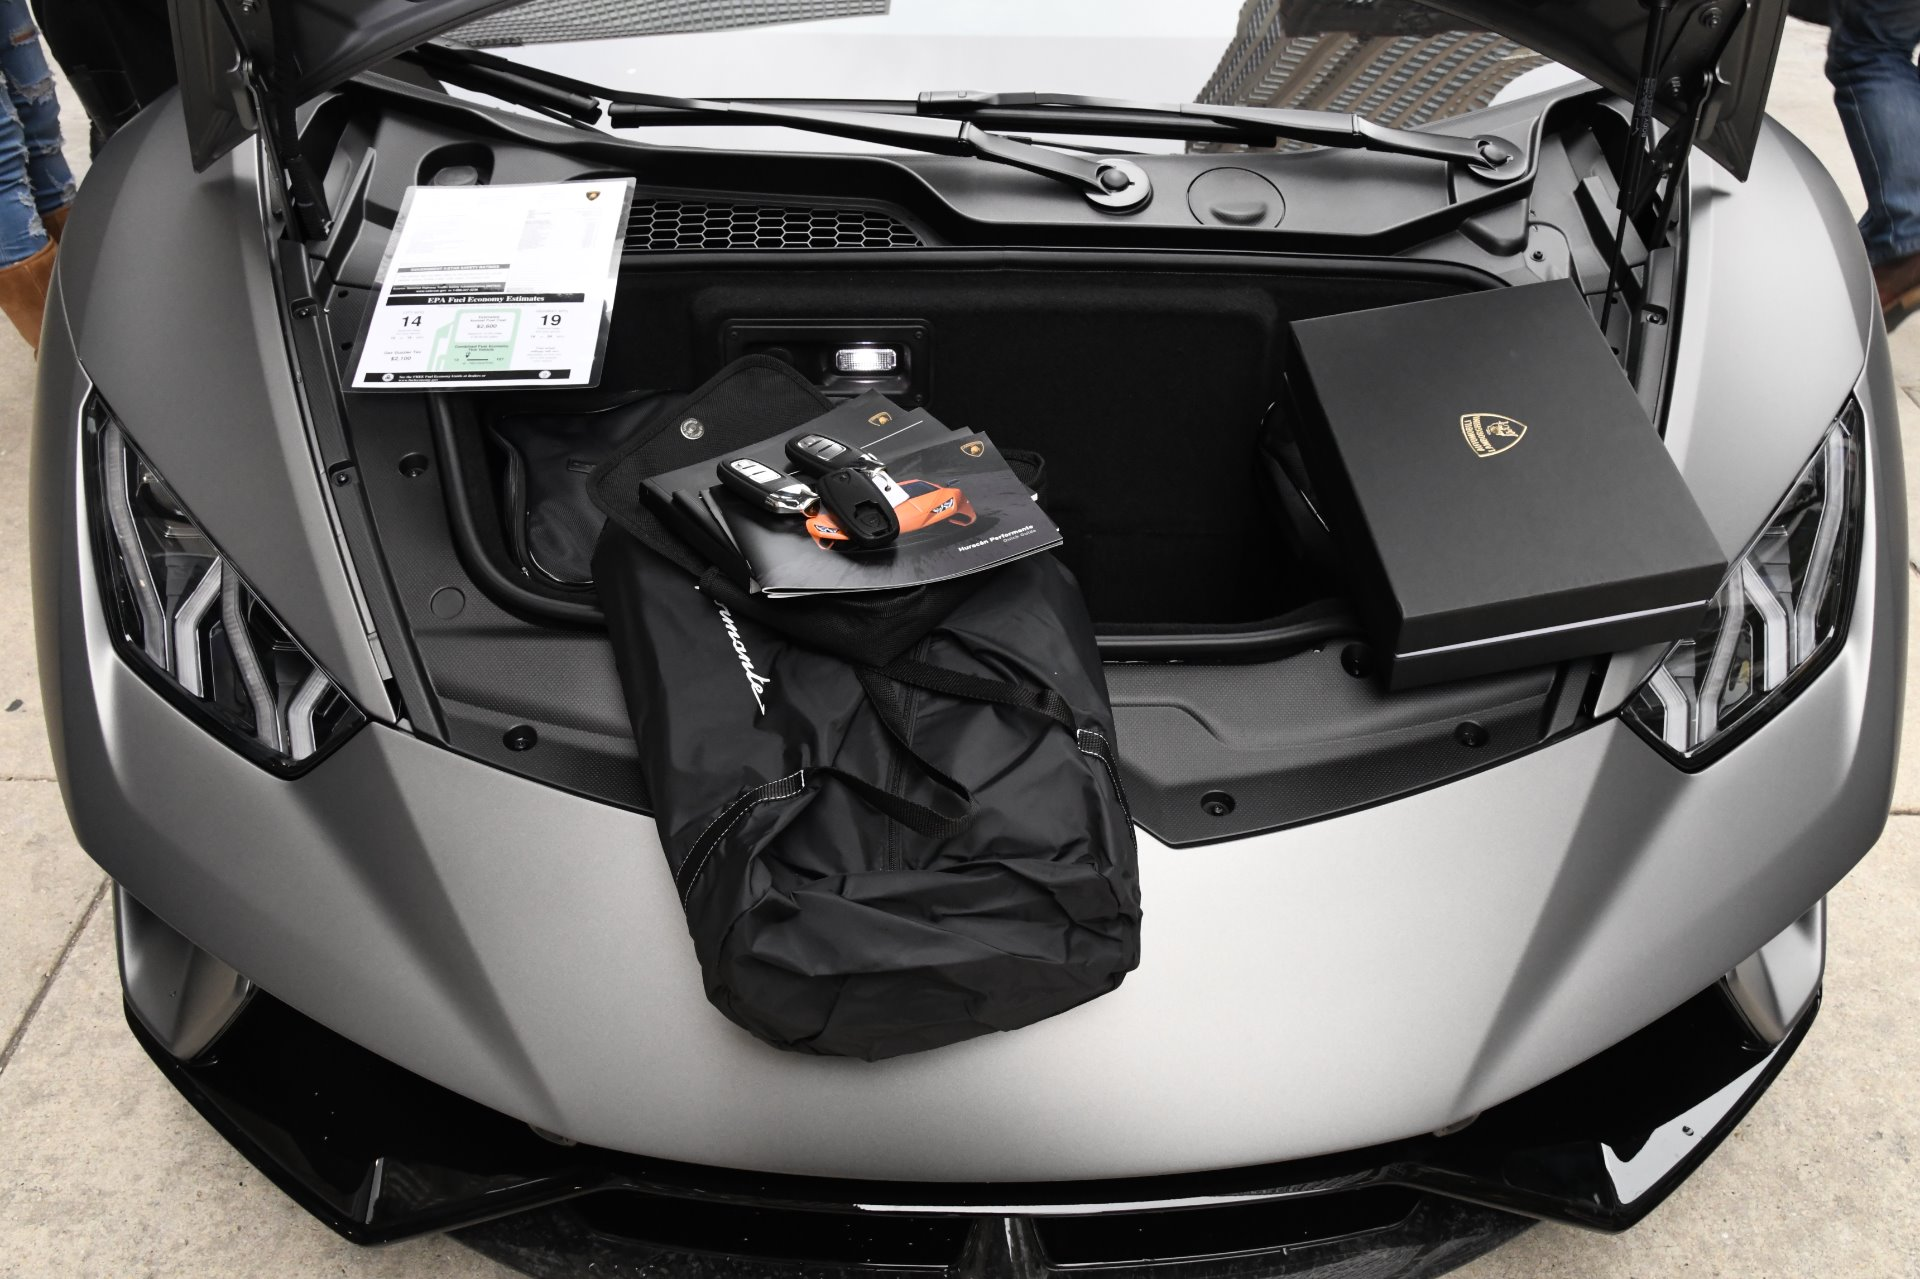 Used 2018 Lamborghini Huracan Performante LP 640-4 Performante | Chicago, IL